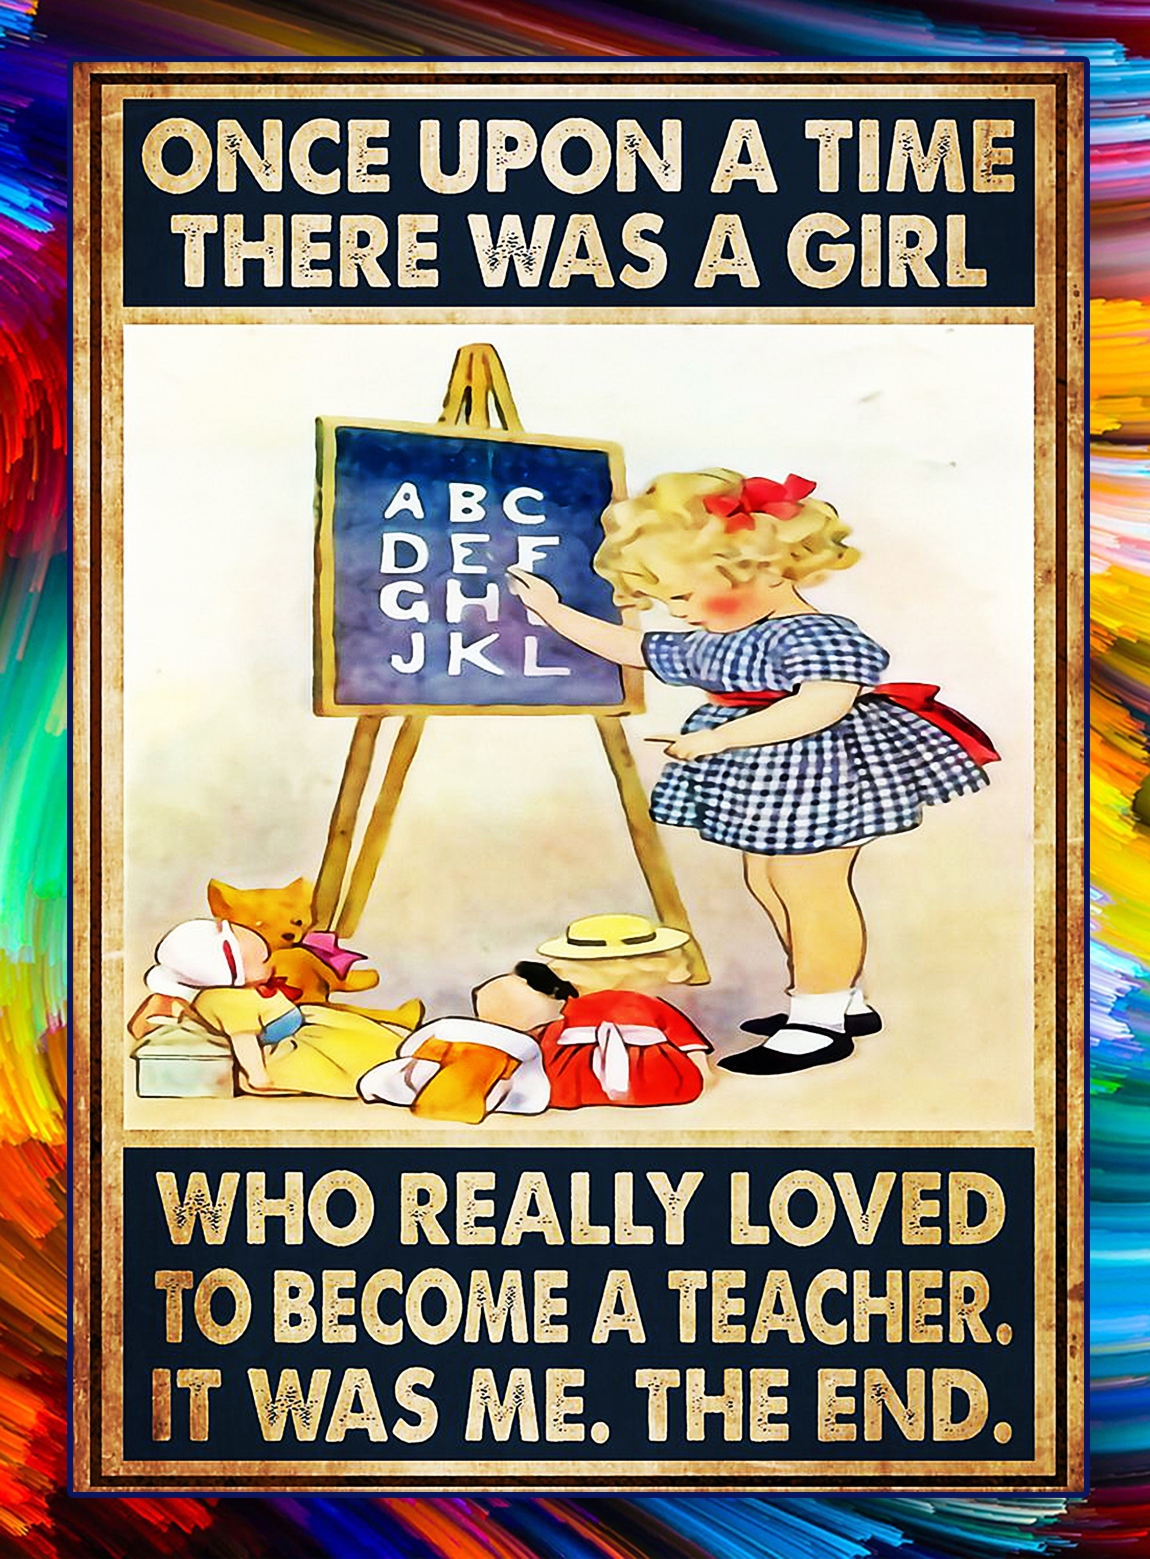 There was a girl who really loved to become a teacher poster - A3